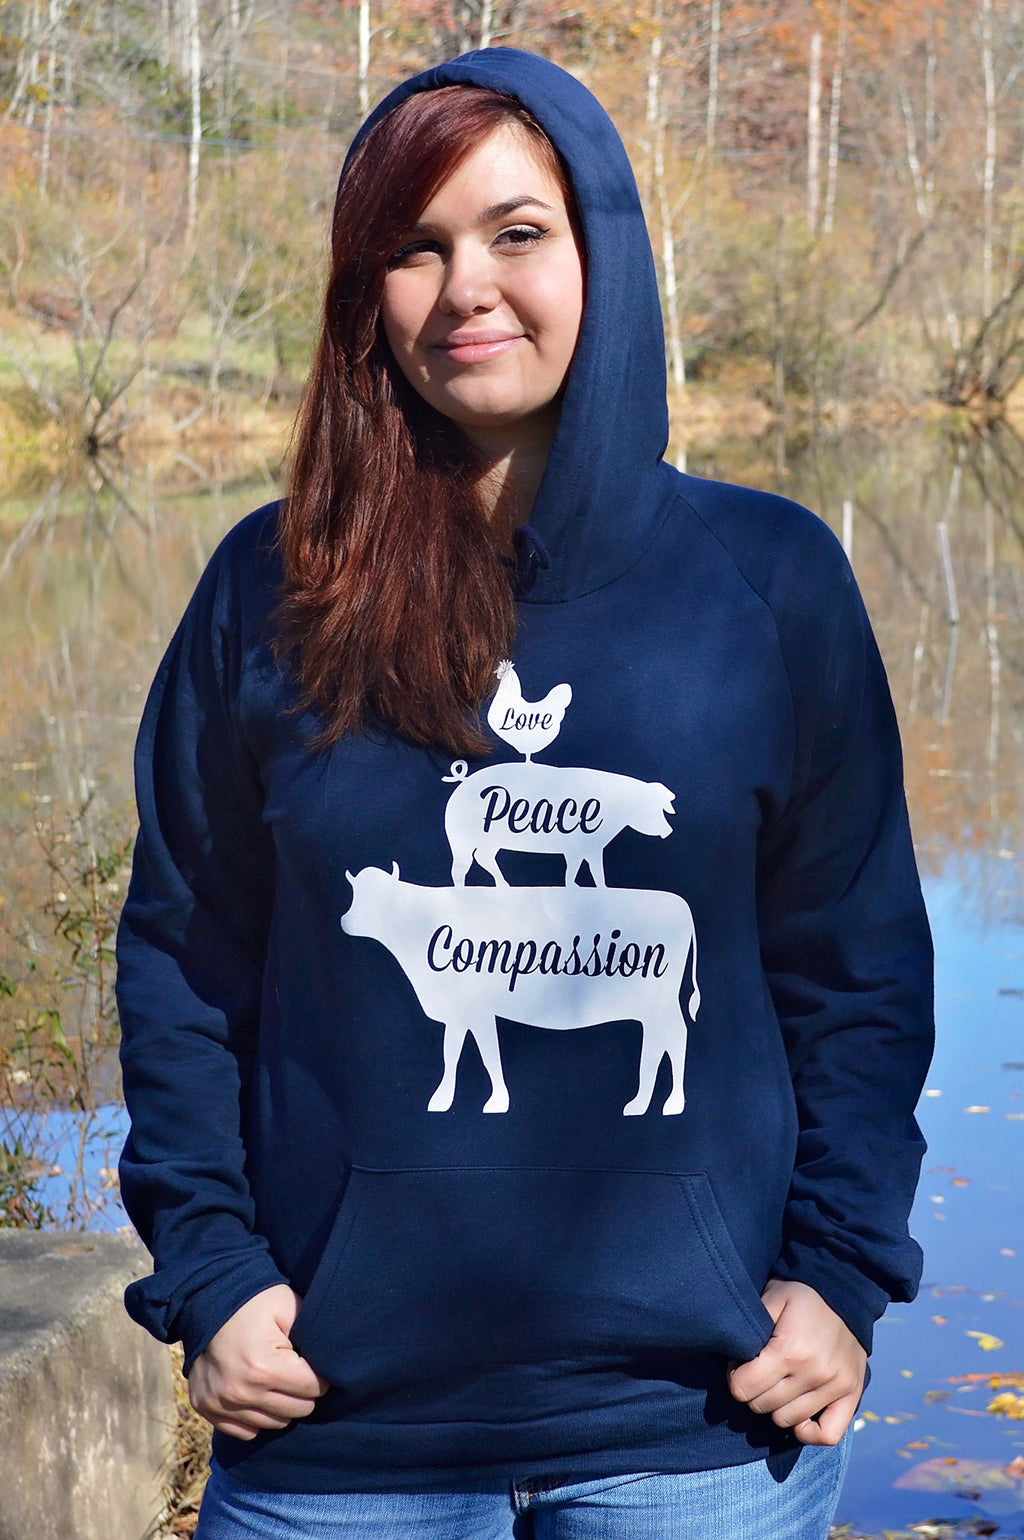 Love, Peace, and Compassion Sweatshirt - Grape Cat - 1